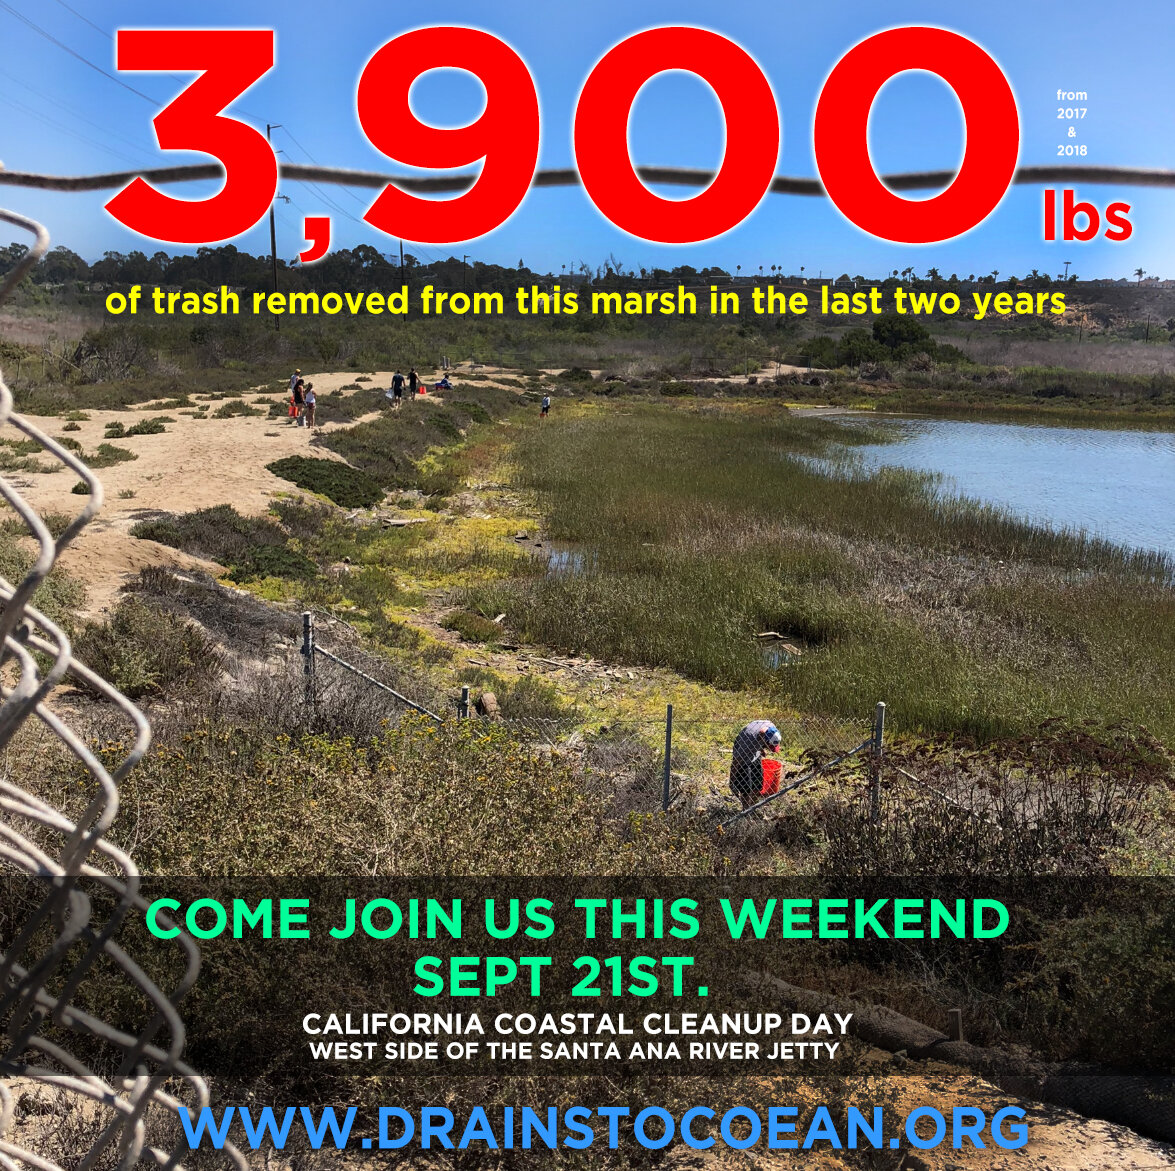 Did you know that local Volunteers pulled out just over 3,900 lbs of trash from the Santa Ana River Marsh in the last two years? It's true. Come join us this Saturday from 8a-12noon. The cleanup is located along the West Side (Inland) of the Santa Ana River, right before the PCH Bridge. Basically right before the west side of the Santa Ana River Bike Trail meets PCH. Look for the tents to sign in. A big thank you to U.S. Army Corp of Engineers, OC Earth Stewards, Drains to Ocean, Sierra Club Angeles Chapter, Orange County Conservation Committee, Republic Services, Banning Ranch Park, Preserve Task Force, & Orange County Coastkeeper for supporting this much needed annual cleanup. More info can be found at:  www.drainstoocean.org/news  #drainstoocean #ocearthstewards #sierraclub, #usarmycorpofengineers #ocearthstewards #republicservices #occonservationcommittee, #banningranch, #preservetaskforce, #occoaskkeeper